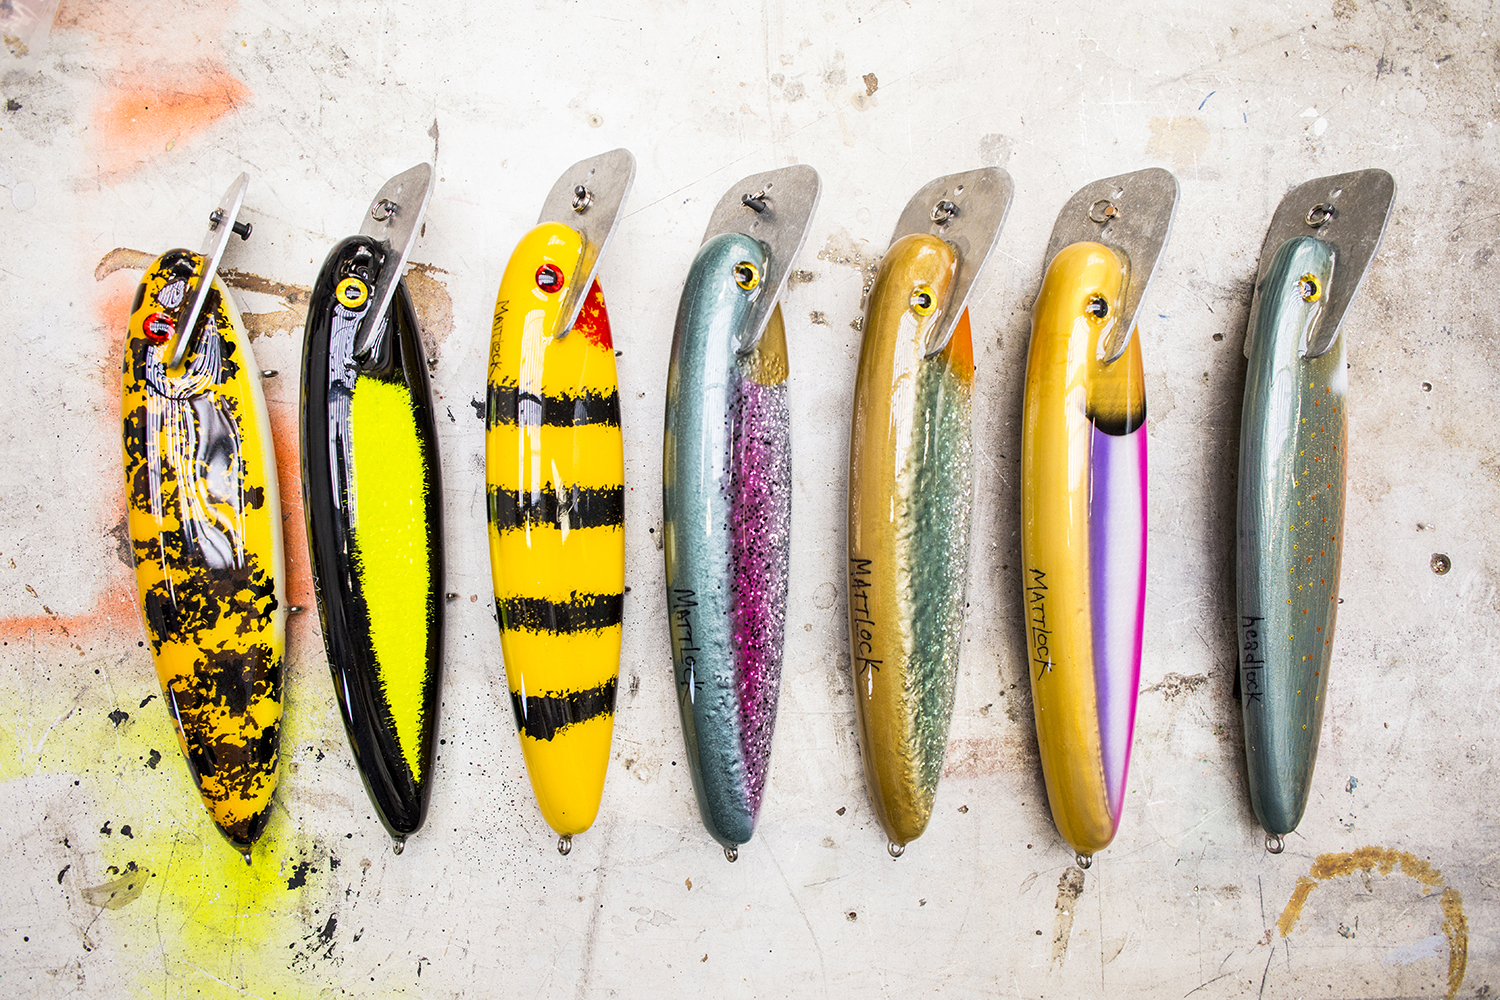 Top: Stacked lure blanks, fresh out of the hot box, waiting to be painted and epoxied. Bottom: A selection of freshly painted and epoxied lures // Photos by Tj Turner